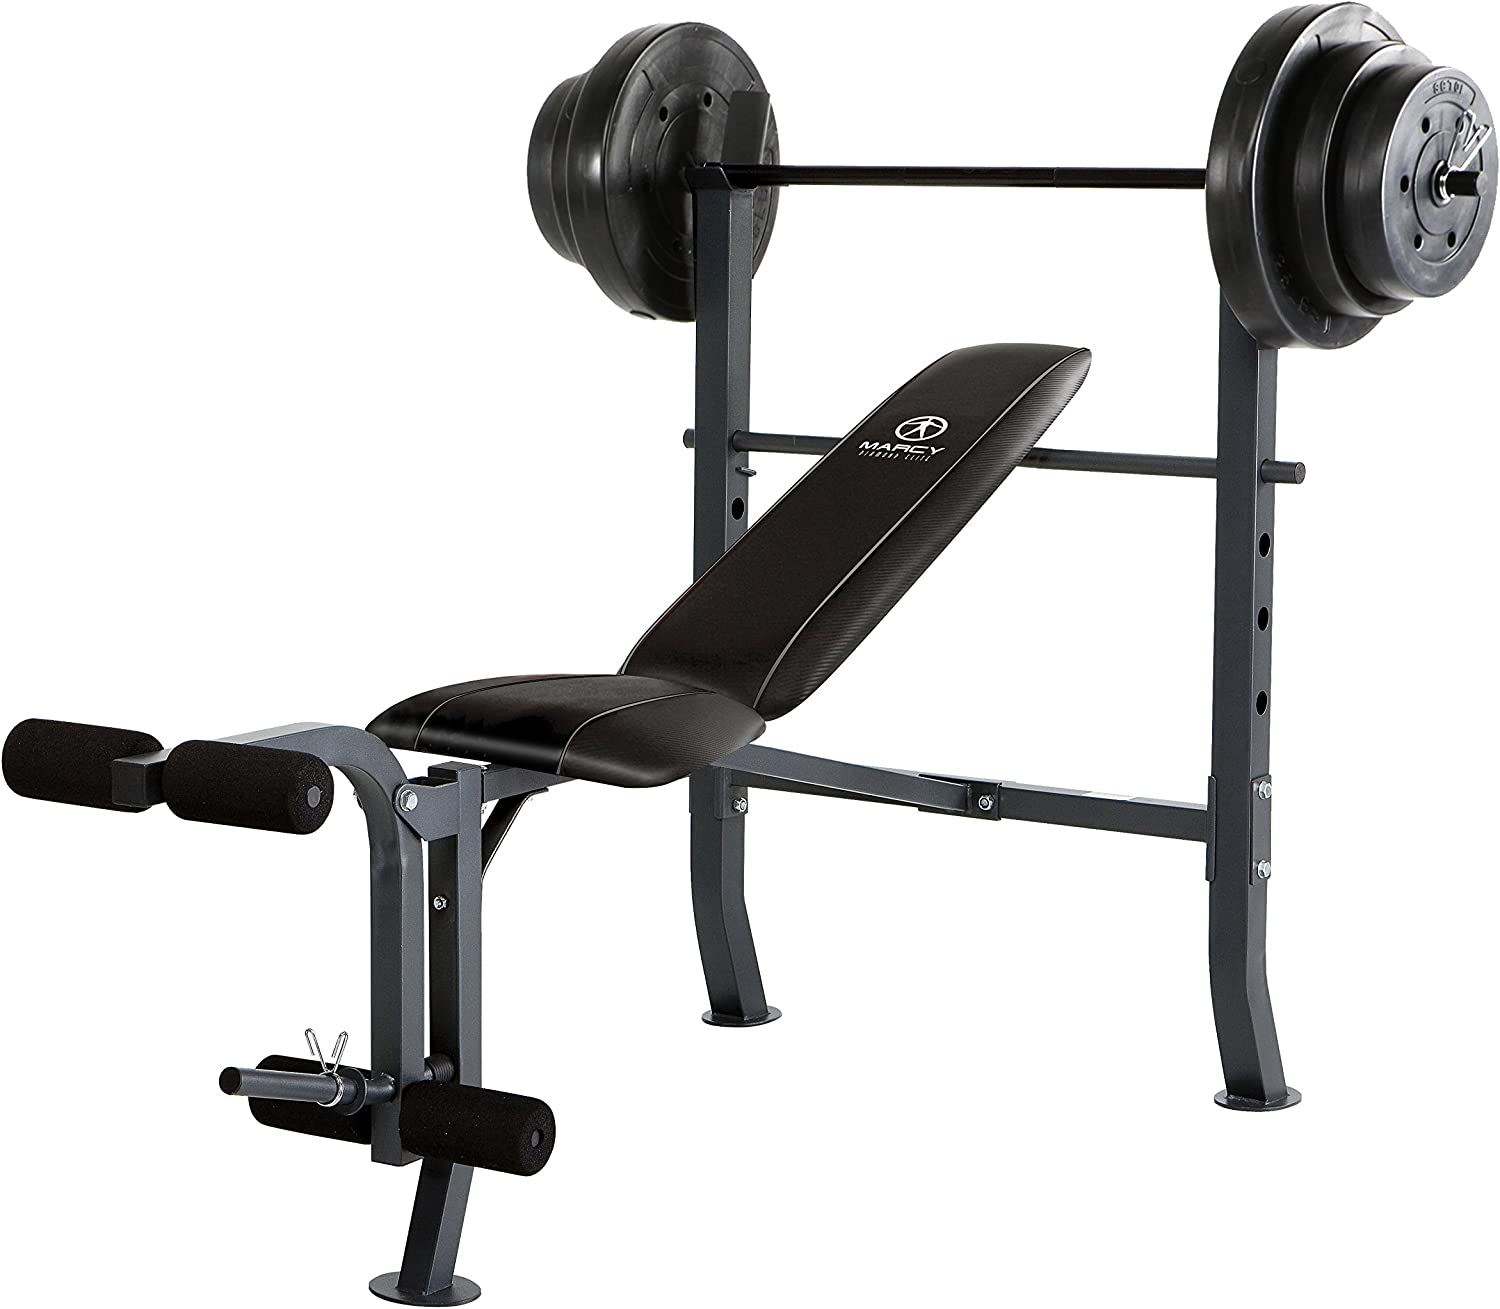 Details about  /Adjustable 8 IN 1 Weight Bench Press Power Weight Lifting Barbell Workout Bench